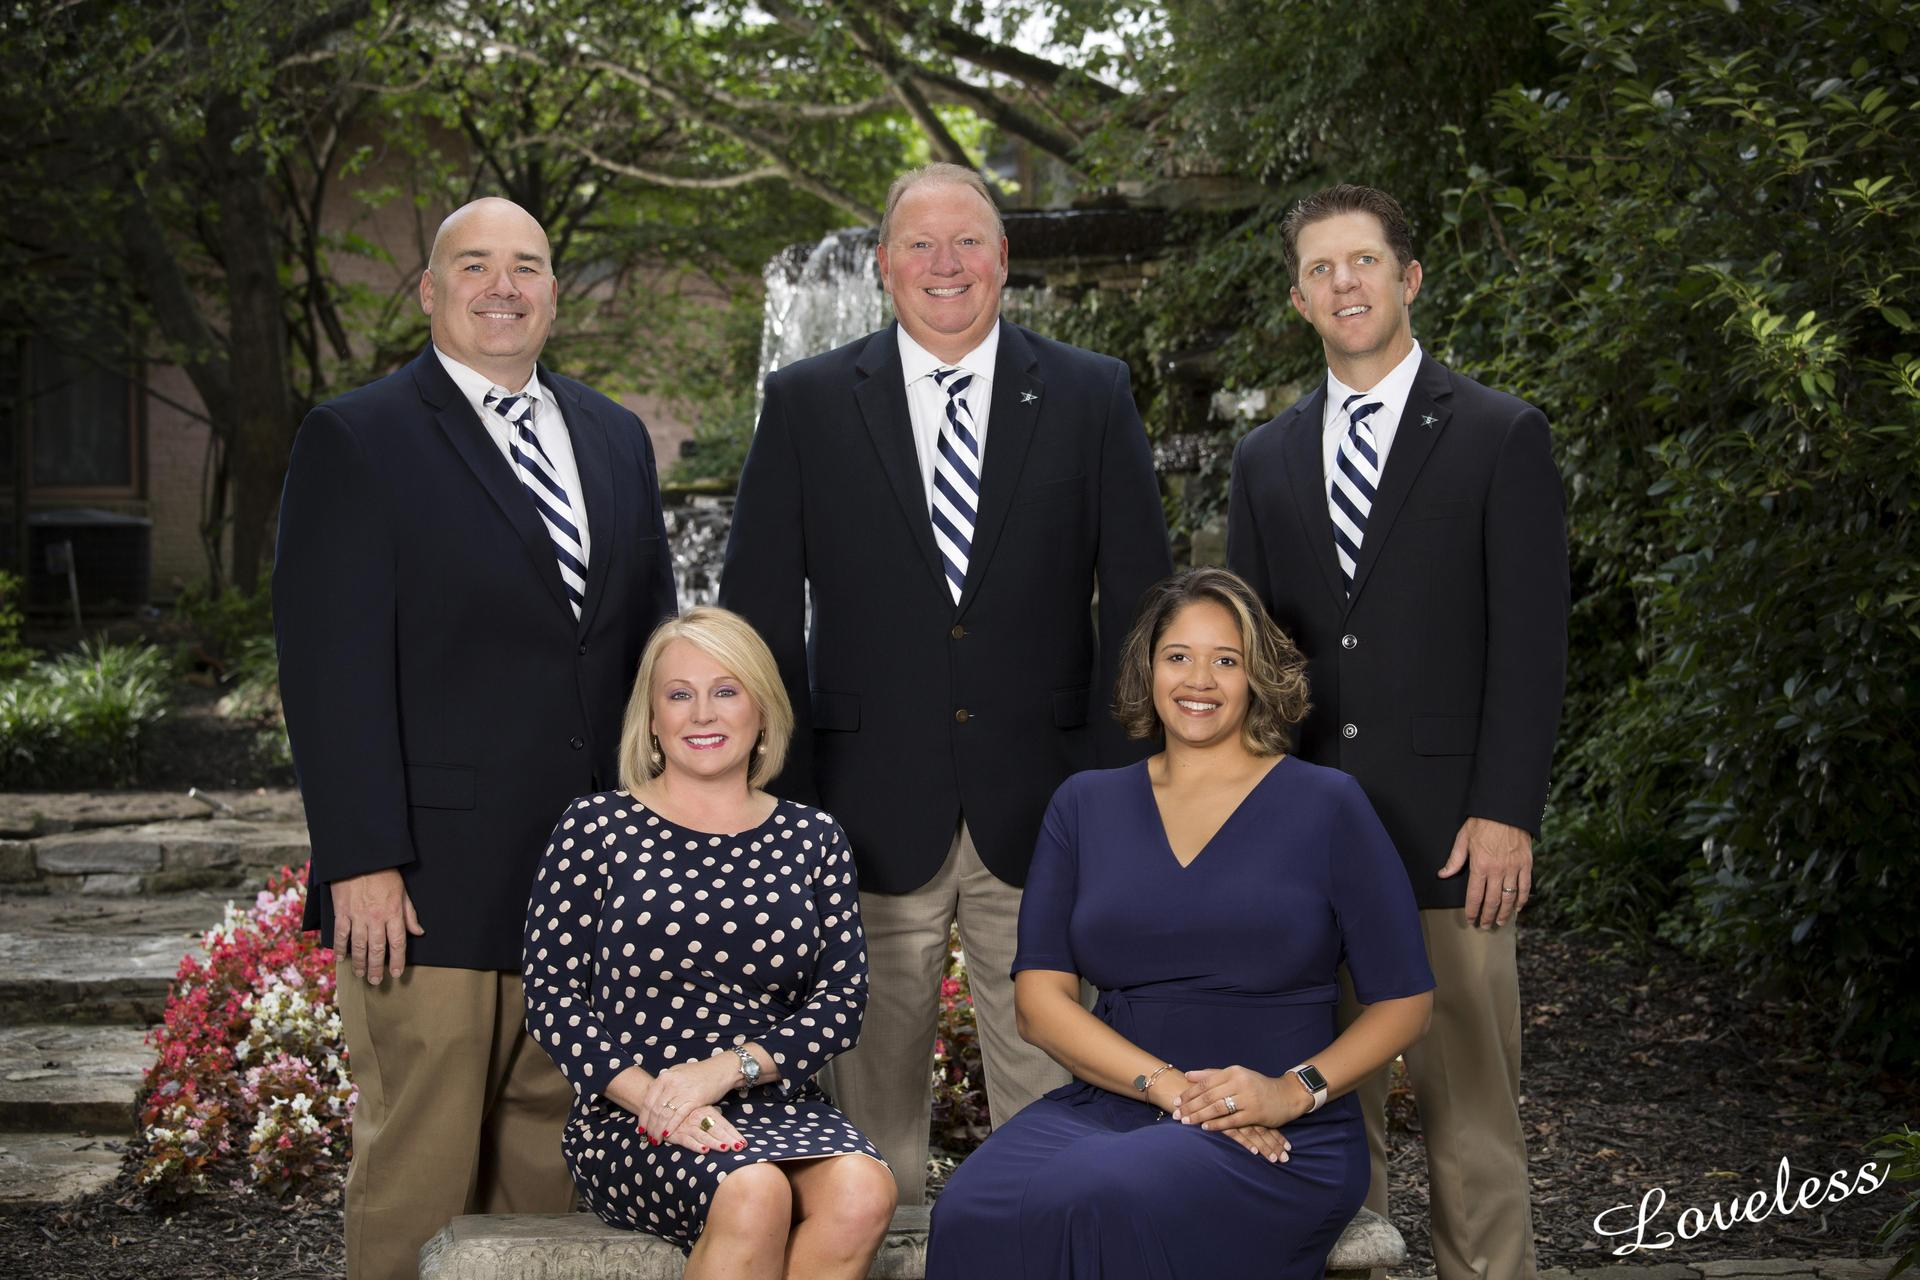 Siegel Administration 19-20